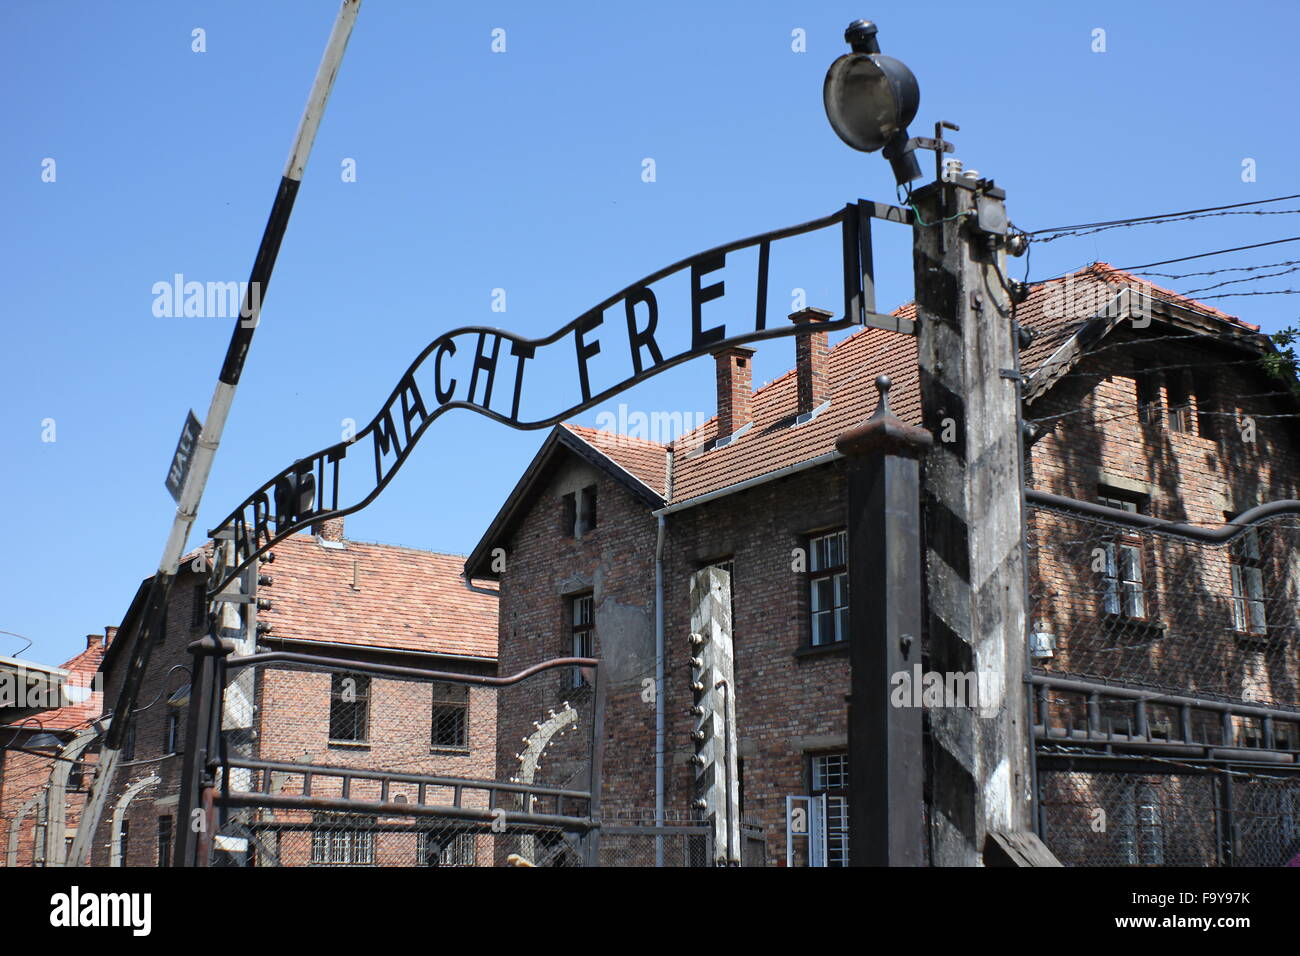 Arbeit Macht Frei sign at the main gate of Auschwitz concentration camp Poland - Stock Image